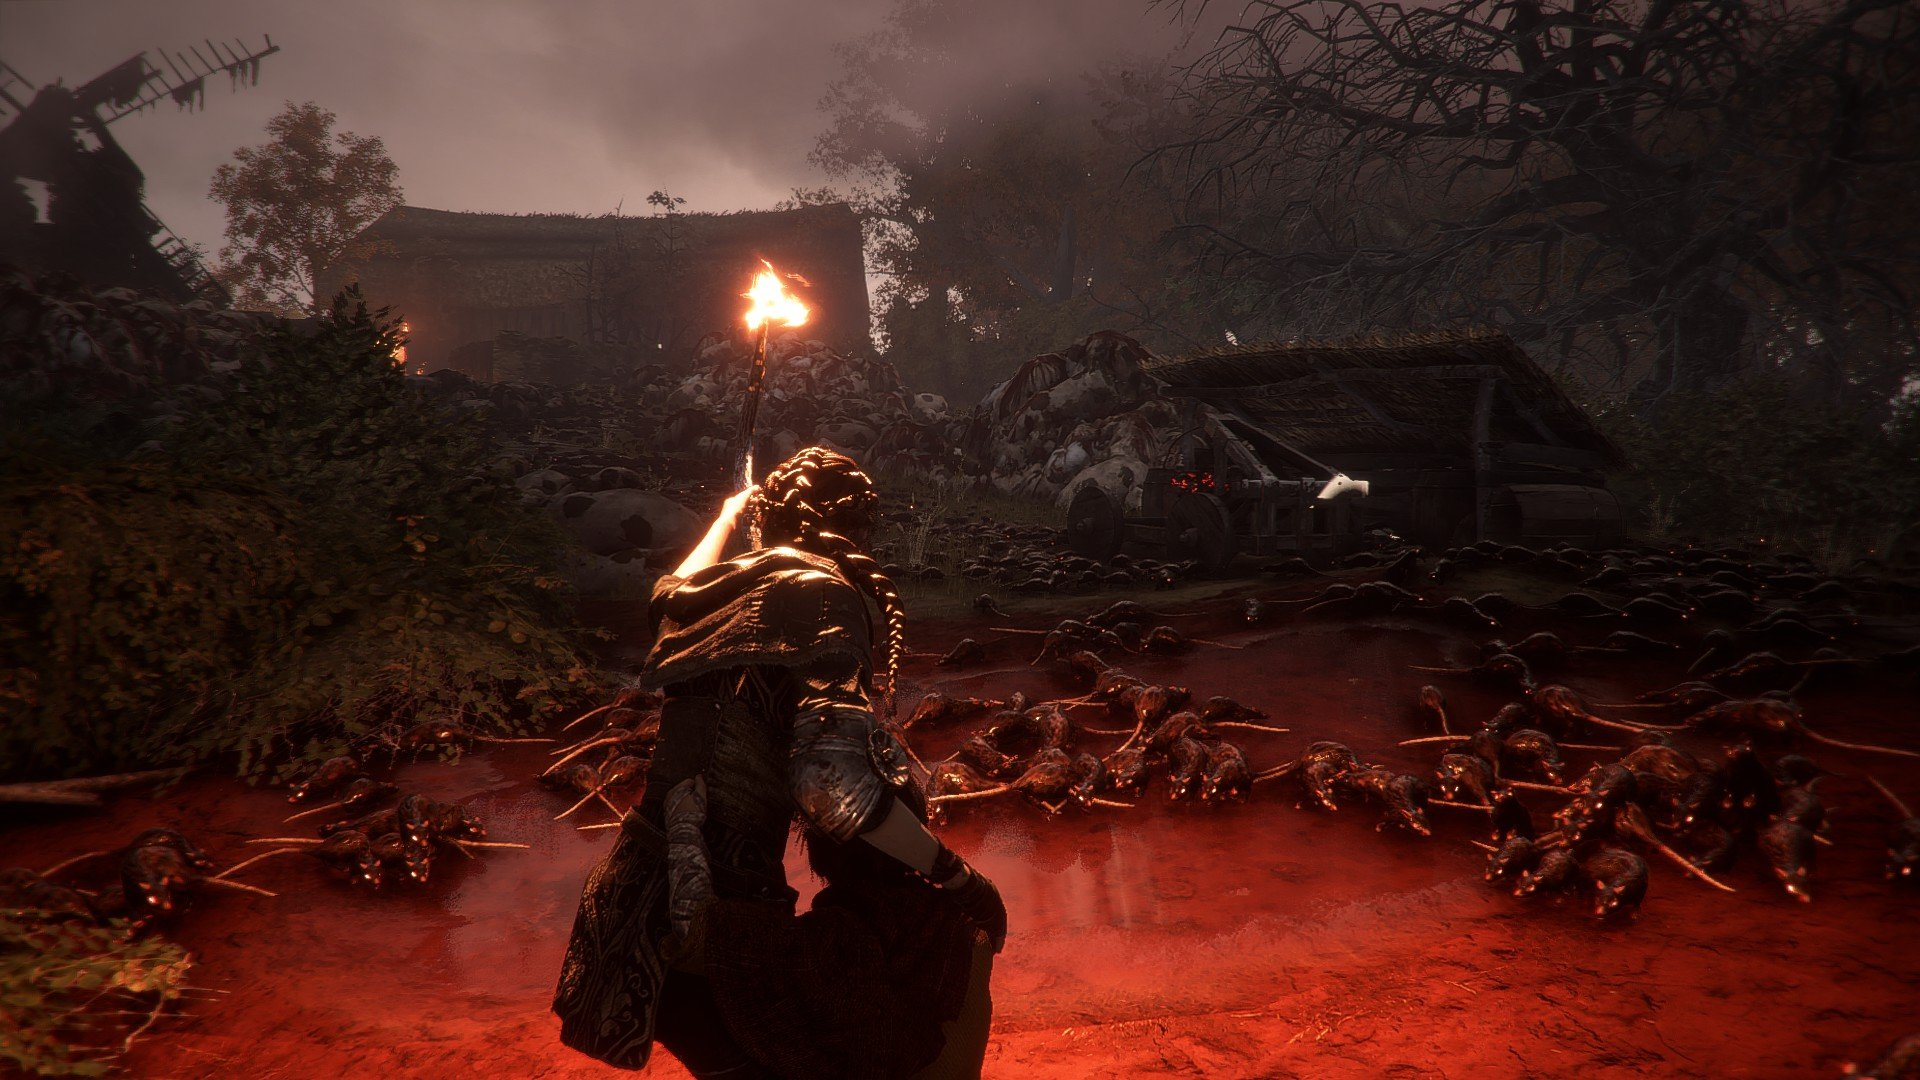 A Plague Tale: Innocence was hardly without issue, but for every flaw, there was something extremely interesting and unique about it too.